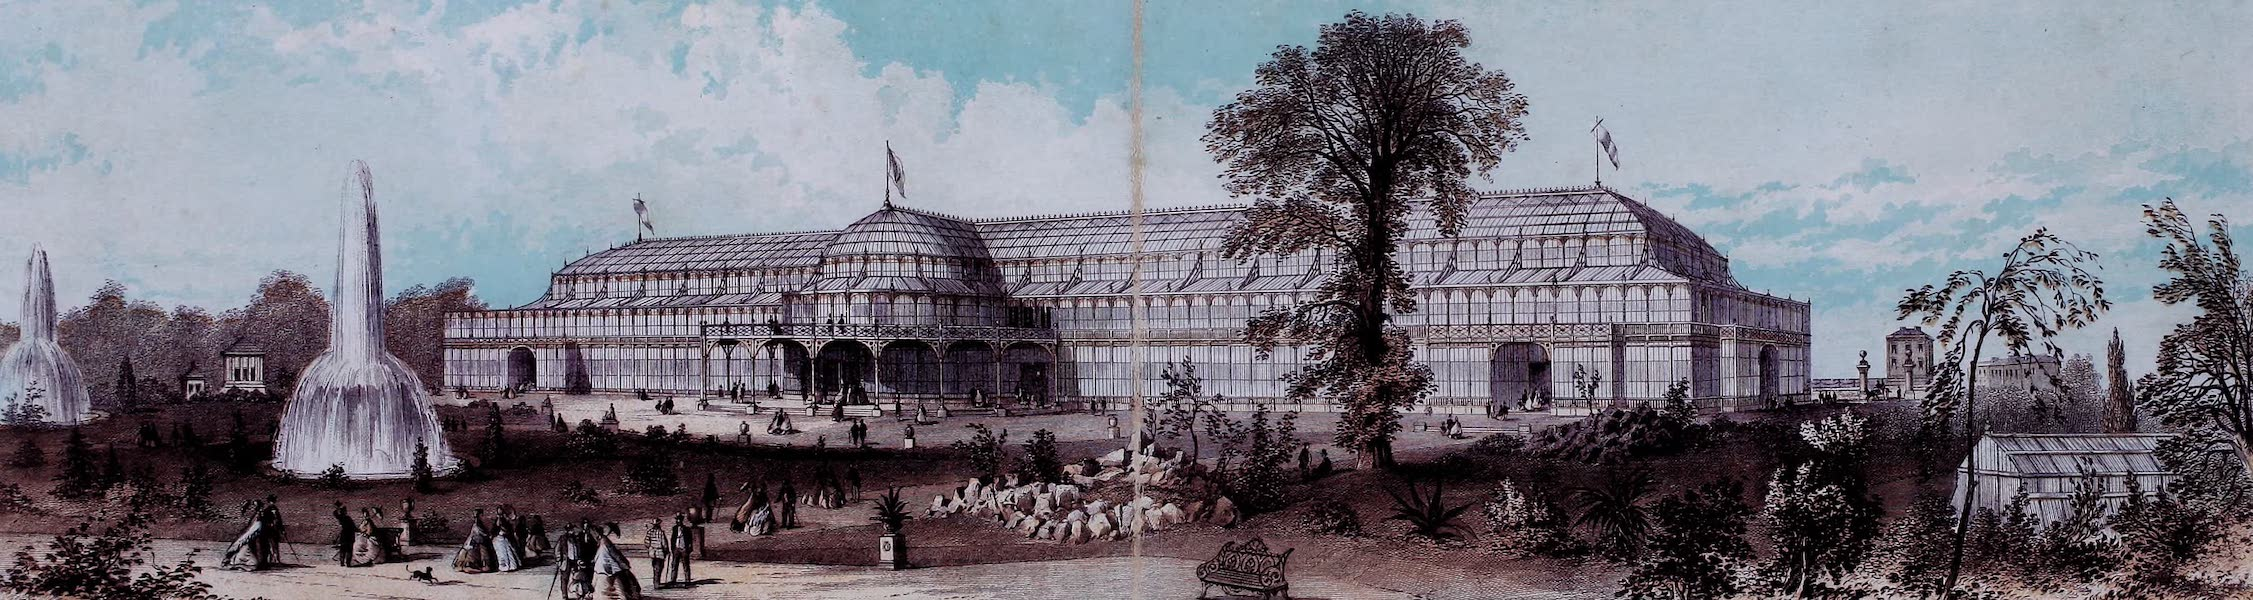 Views of the Dublin Exhibition - The Dublin International Exhibition from the Gardens (1865)